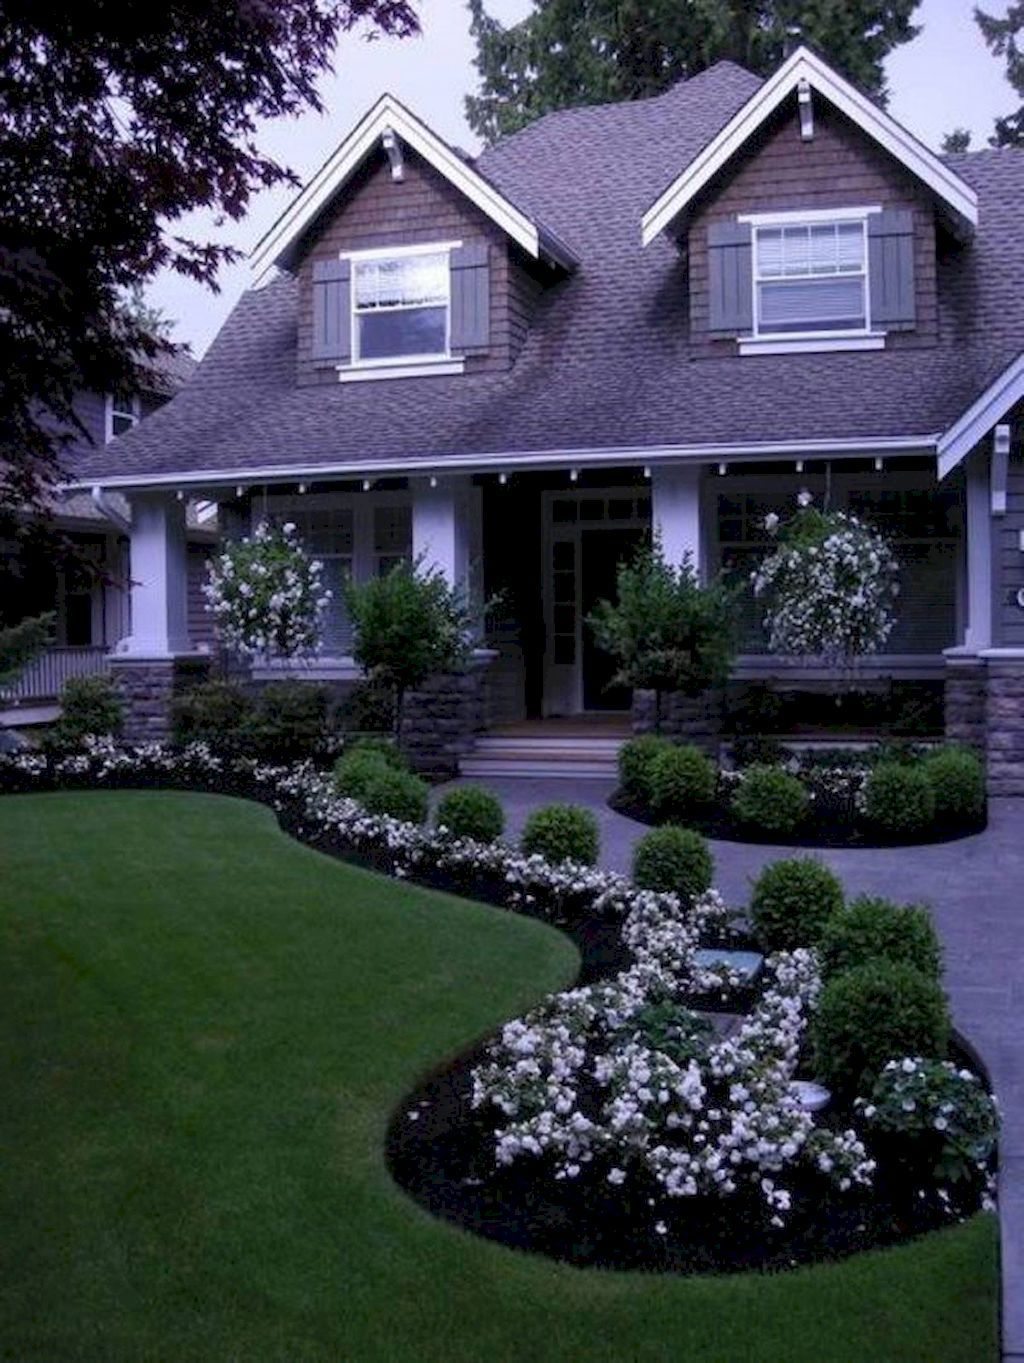 40 beautiful front yard landscaping ideas yard for Front lawn designs